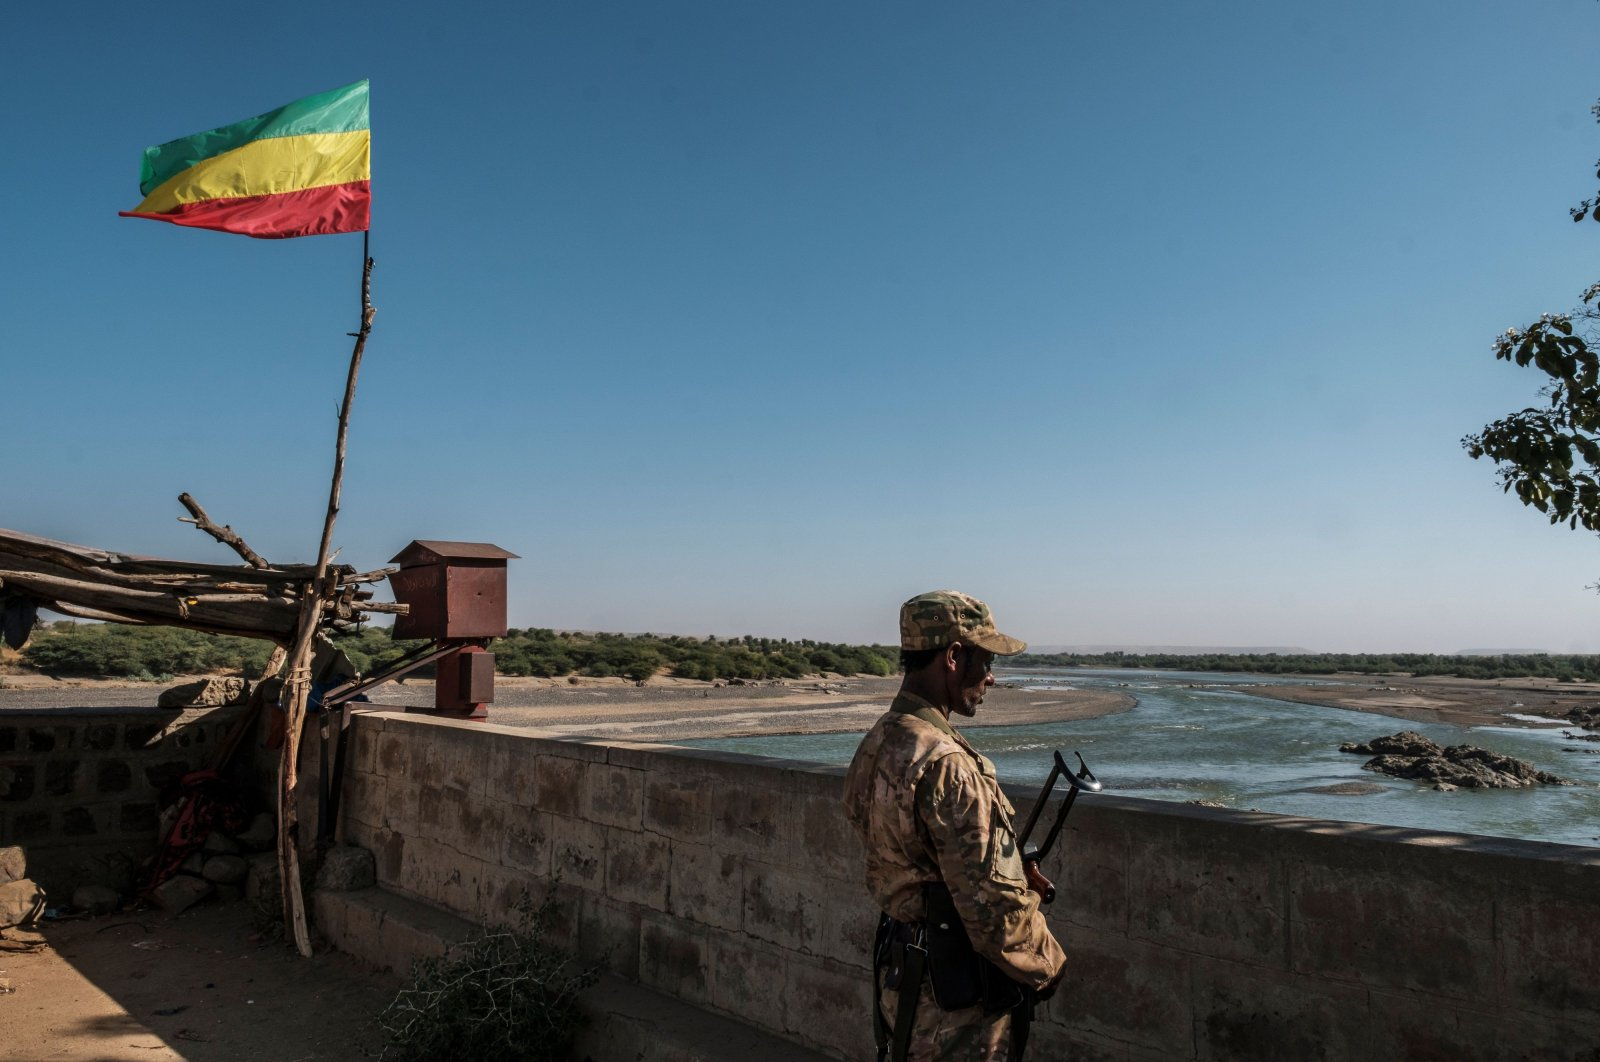 A member of the Amhara Special Forces watches on at the border crossing with Eritrea where an Imperial Ethiopian flag waves, Humera, Ethiopia, Nov. 22, 2020. (AFP Photo)